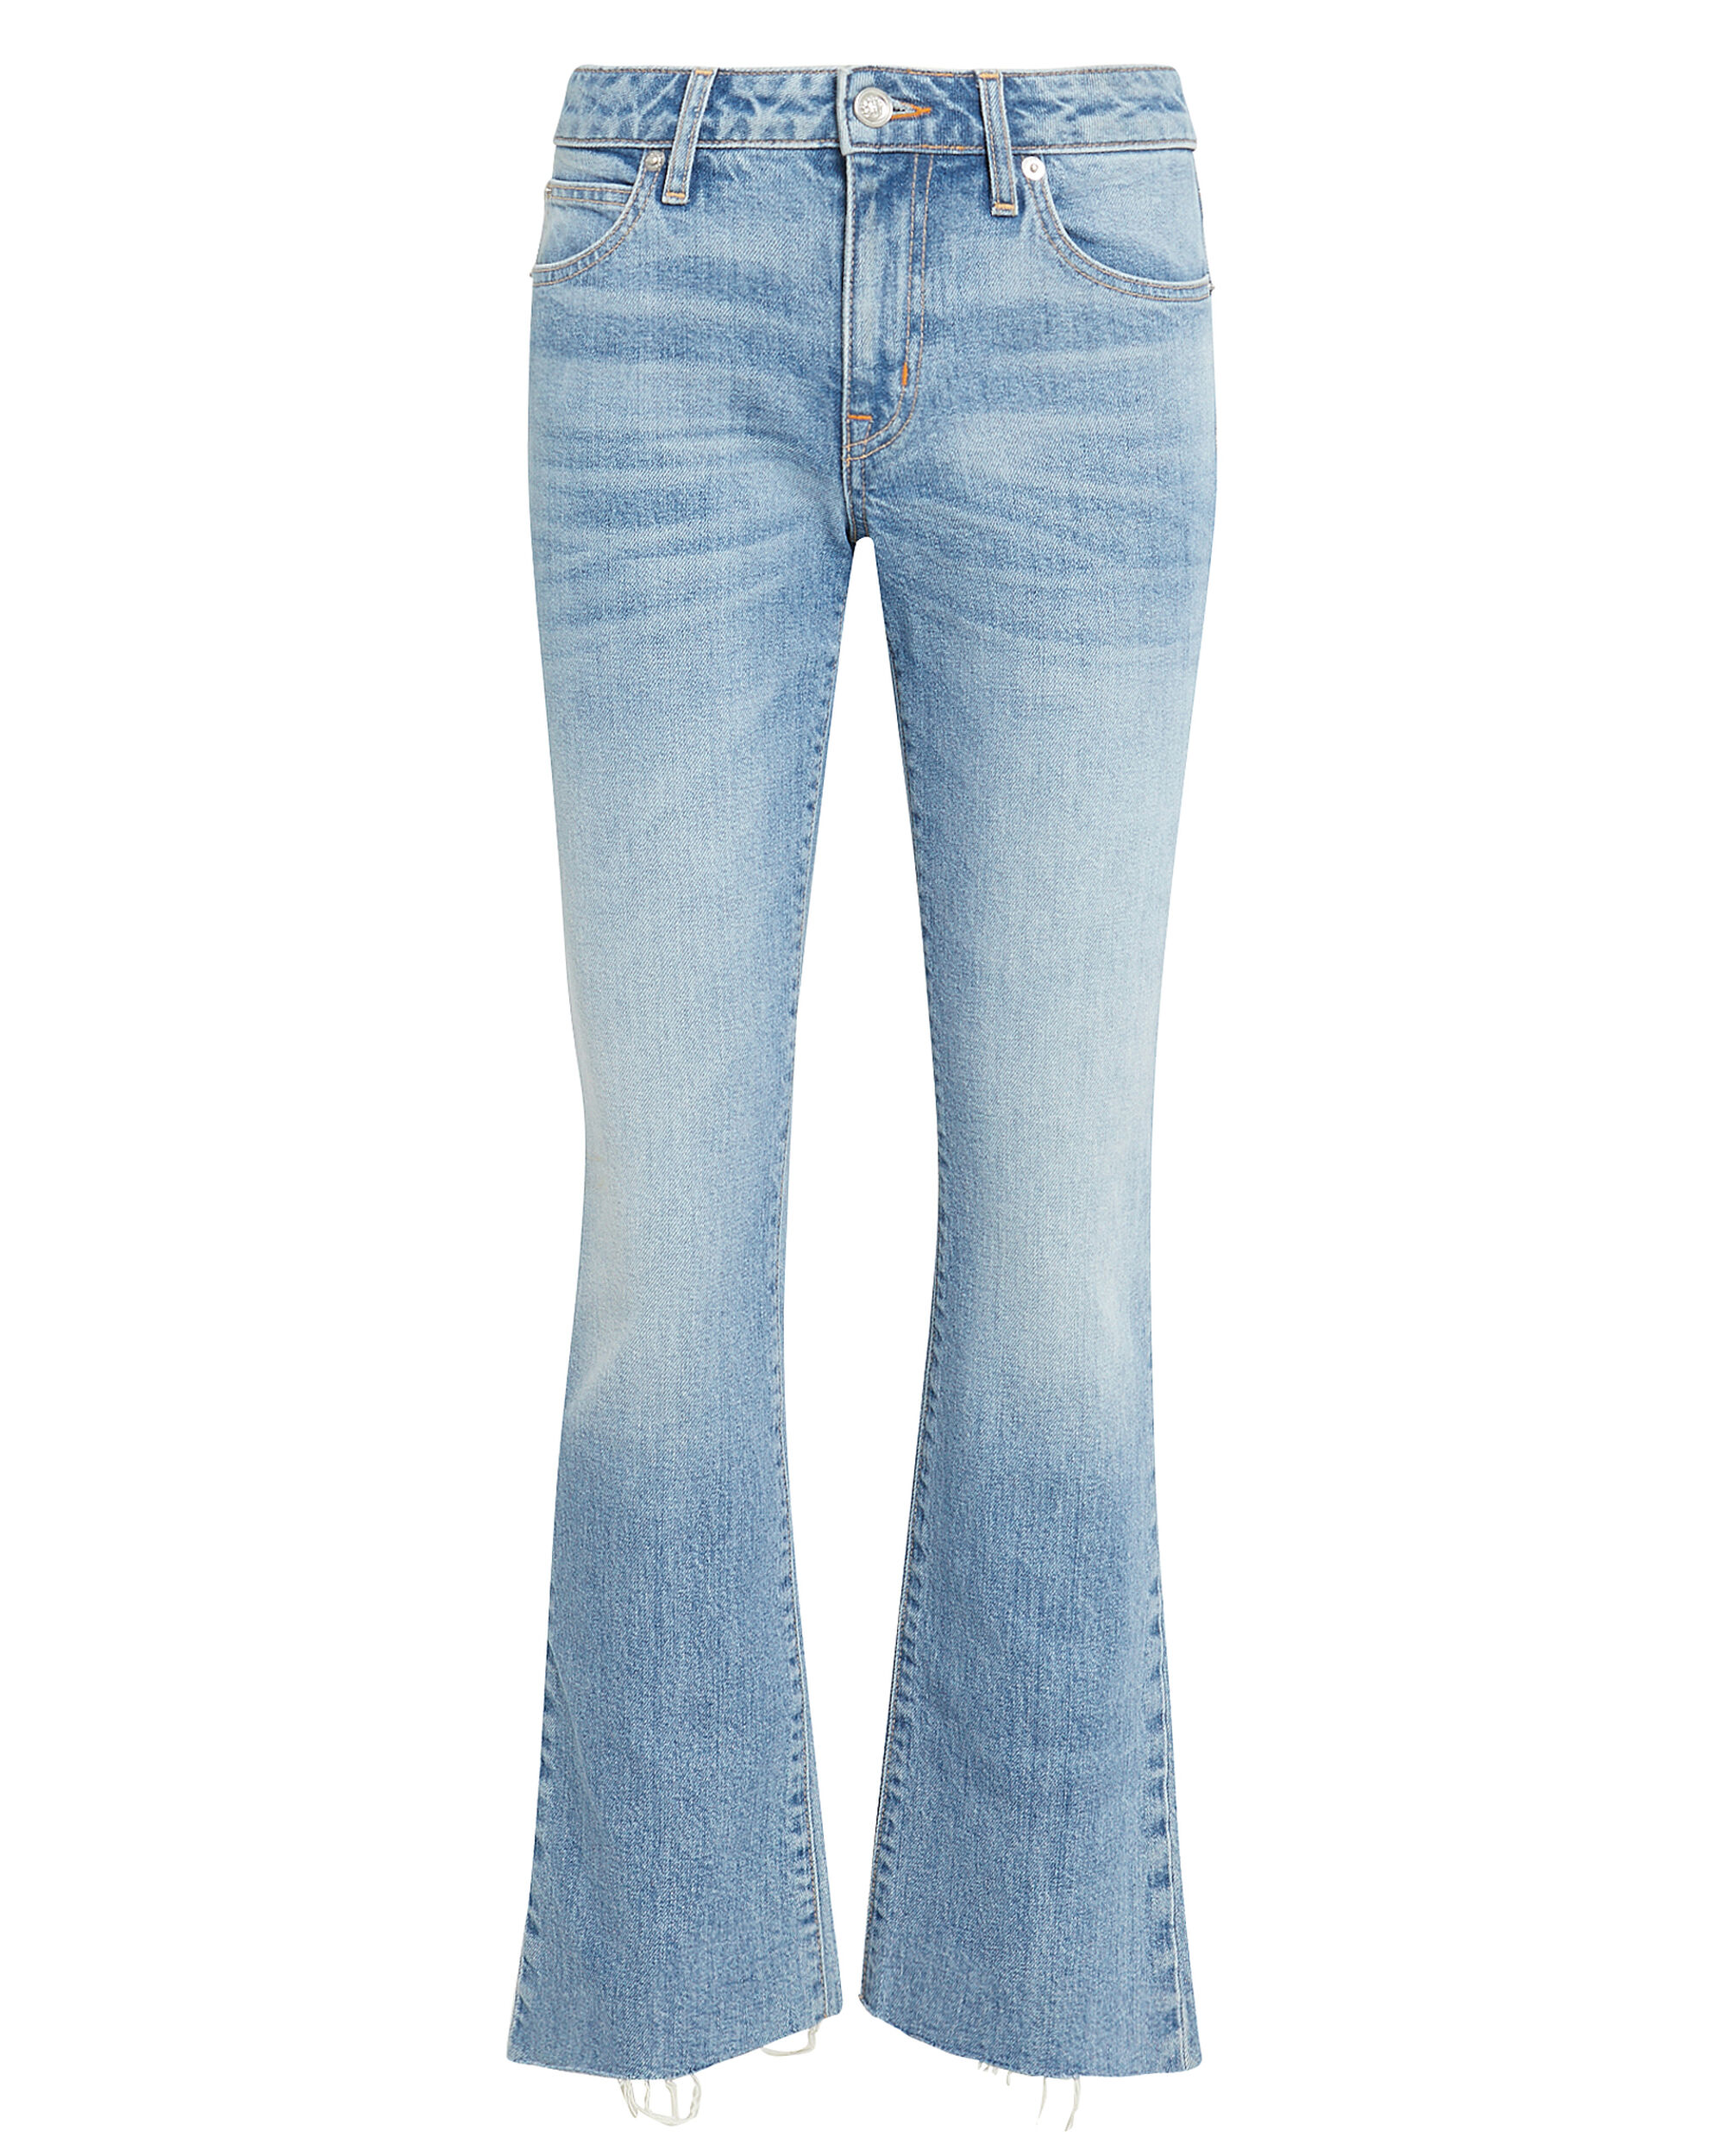 Scarlett Kick Flare Jeans, LIGHT WASH DENIM, hi-res